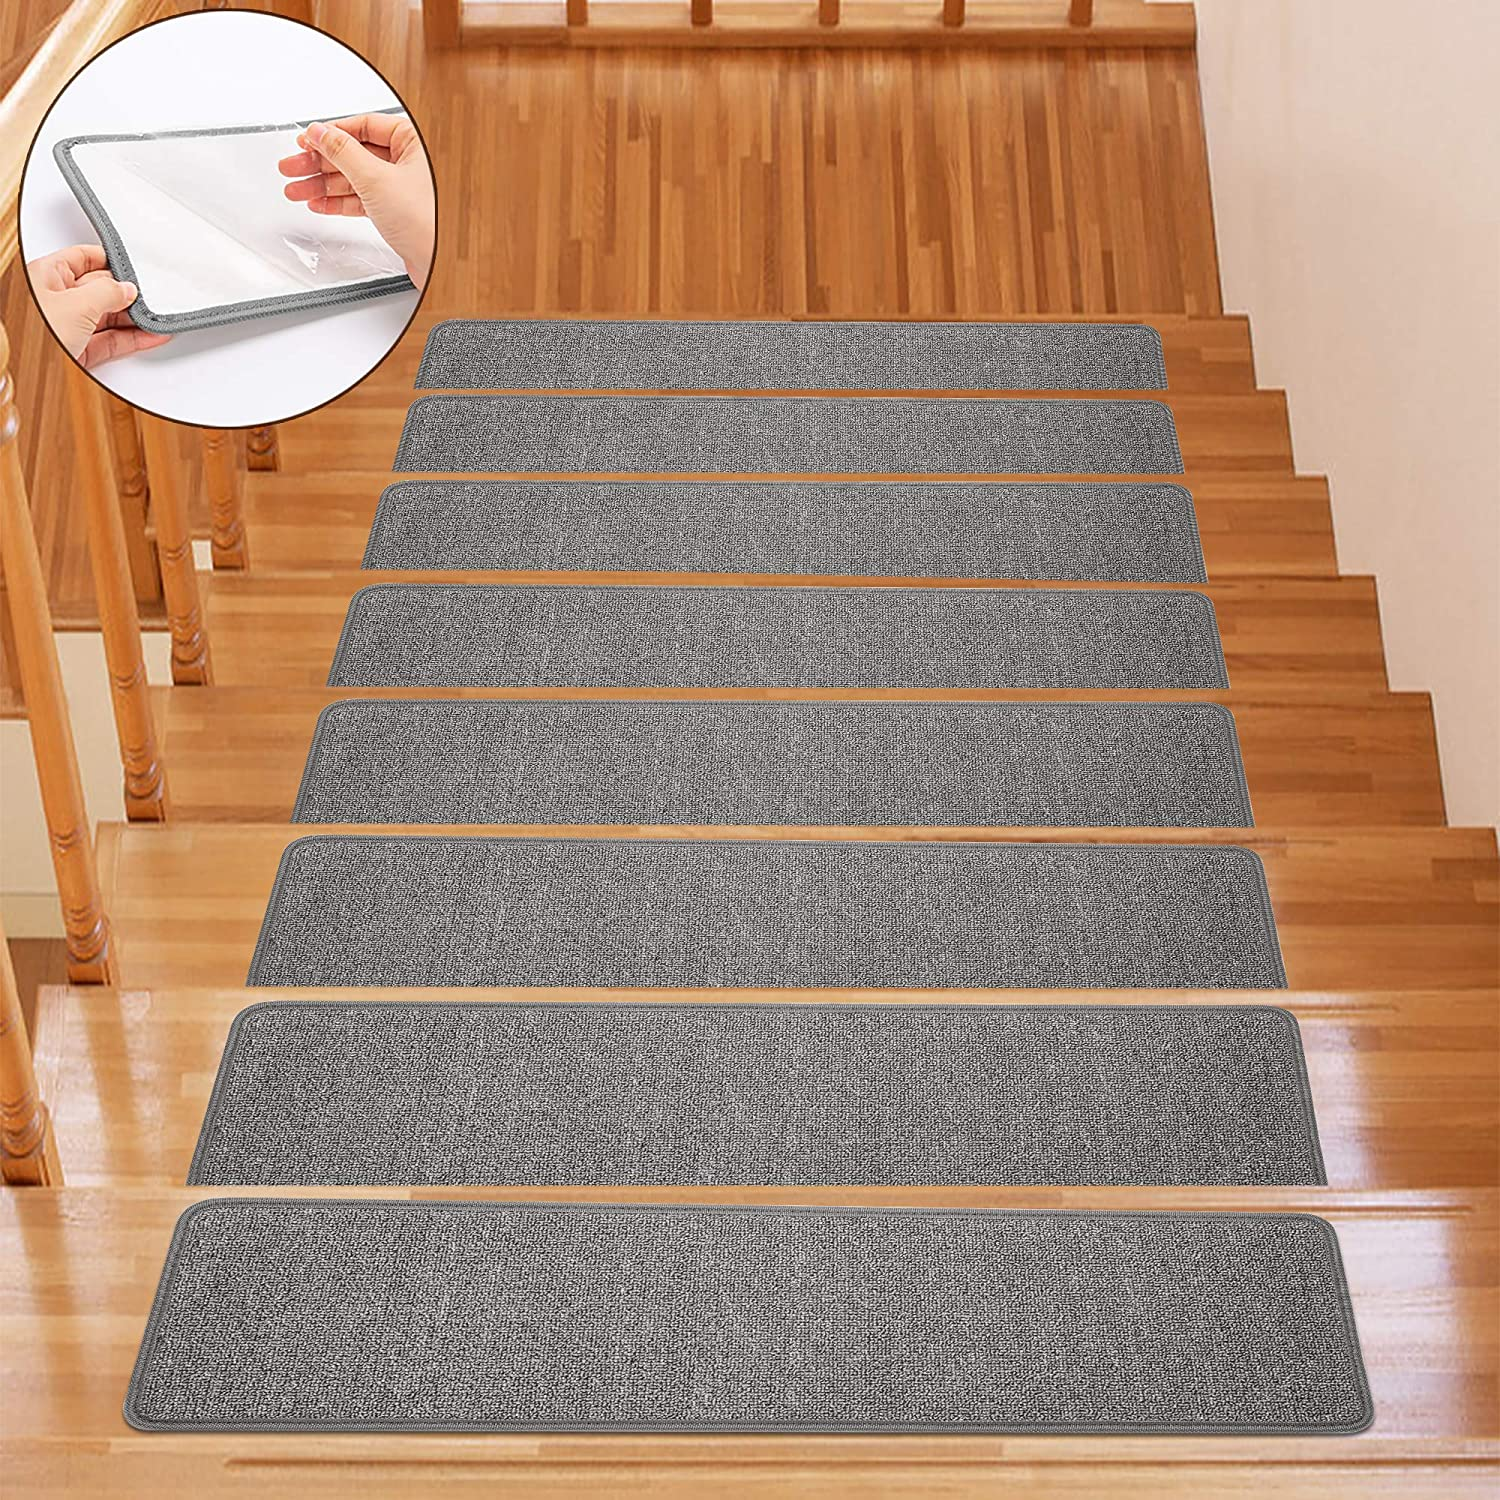 "Indoor Comfort Soft Stair Stepping Mat, Terry Surface Non-Slip Blanket Stair Stepping Mat 8"" x 30"" (13-Pack, Grey)"